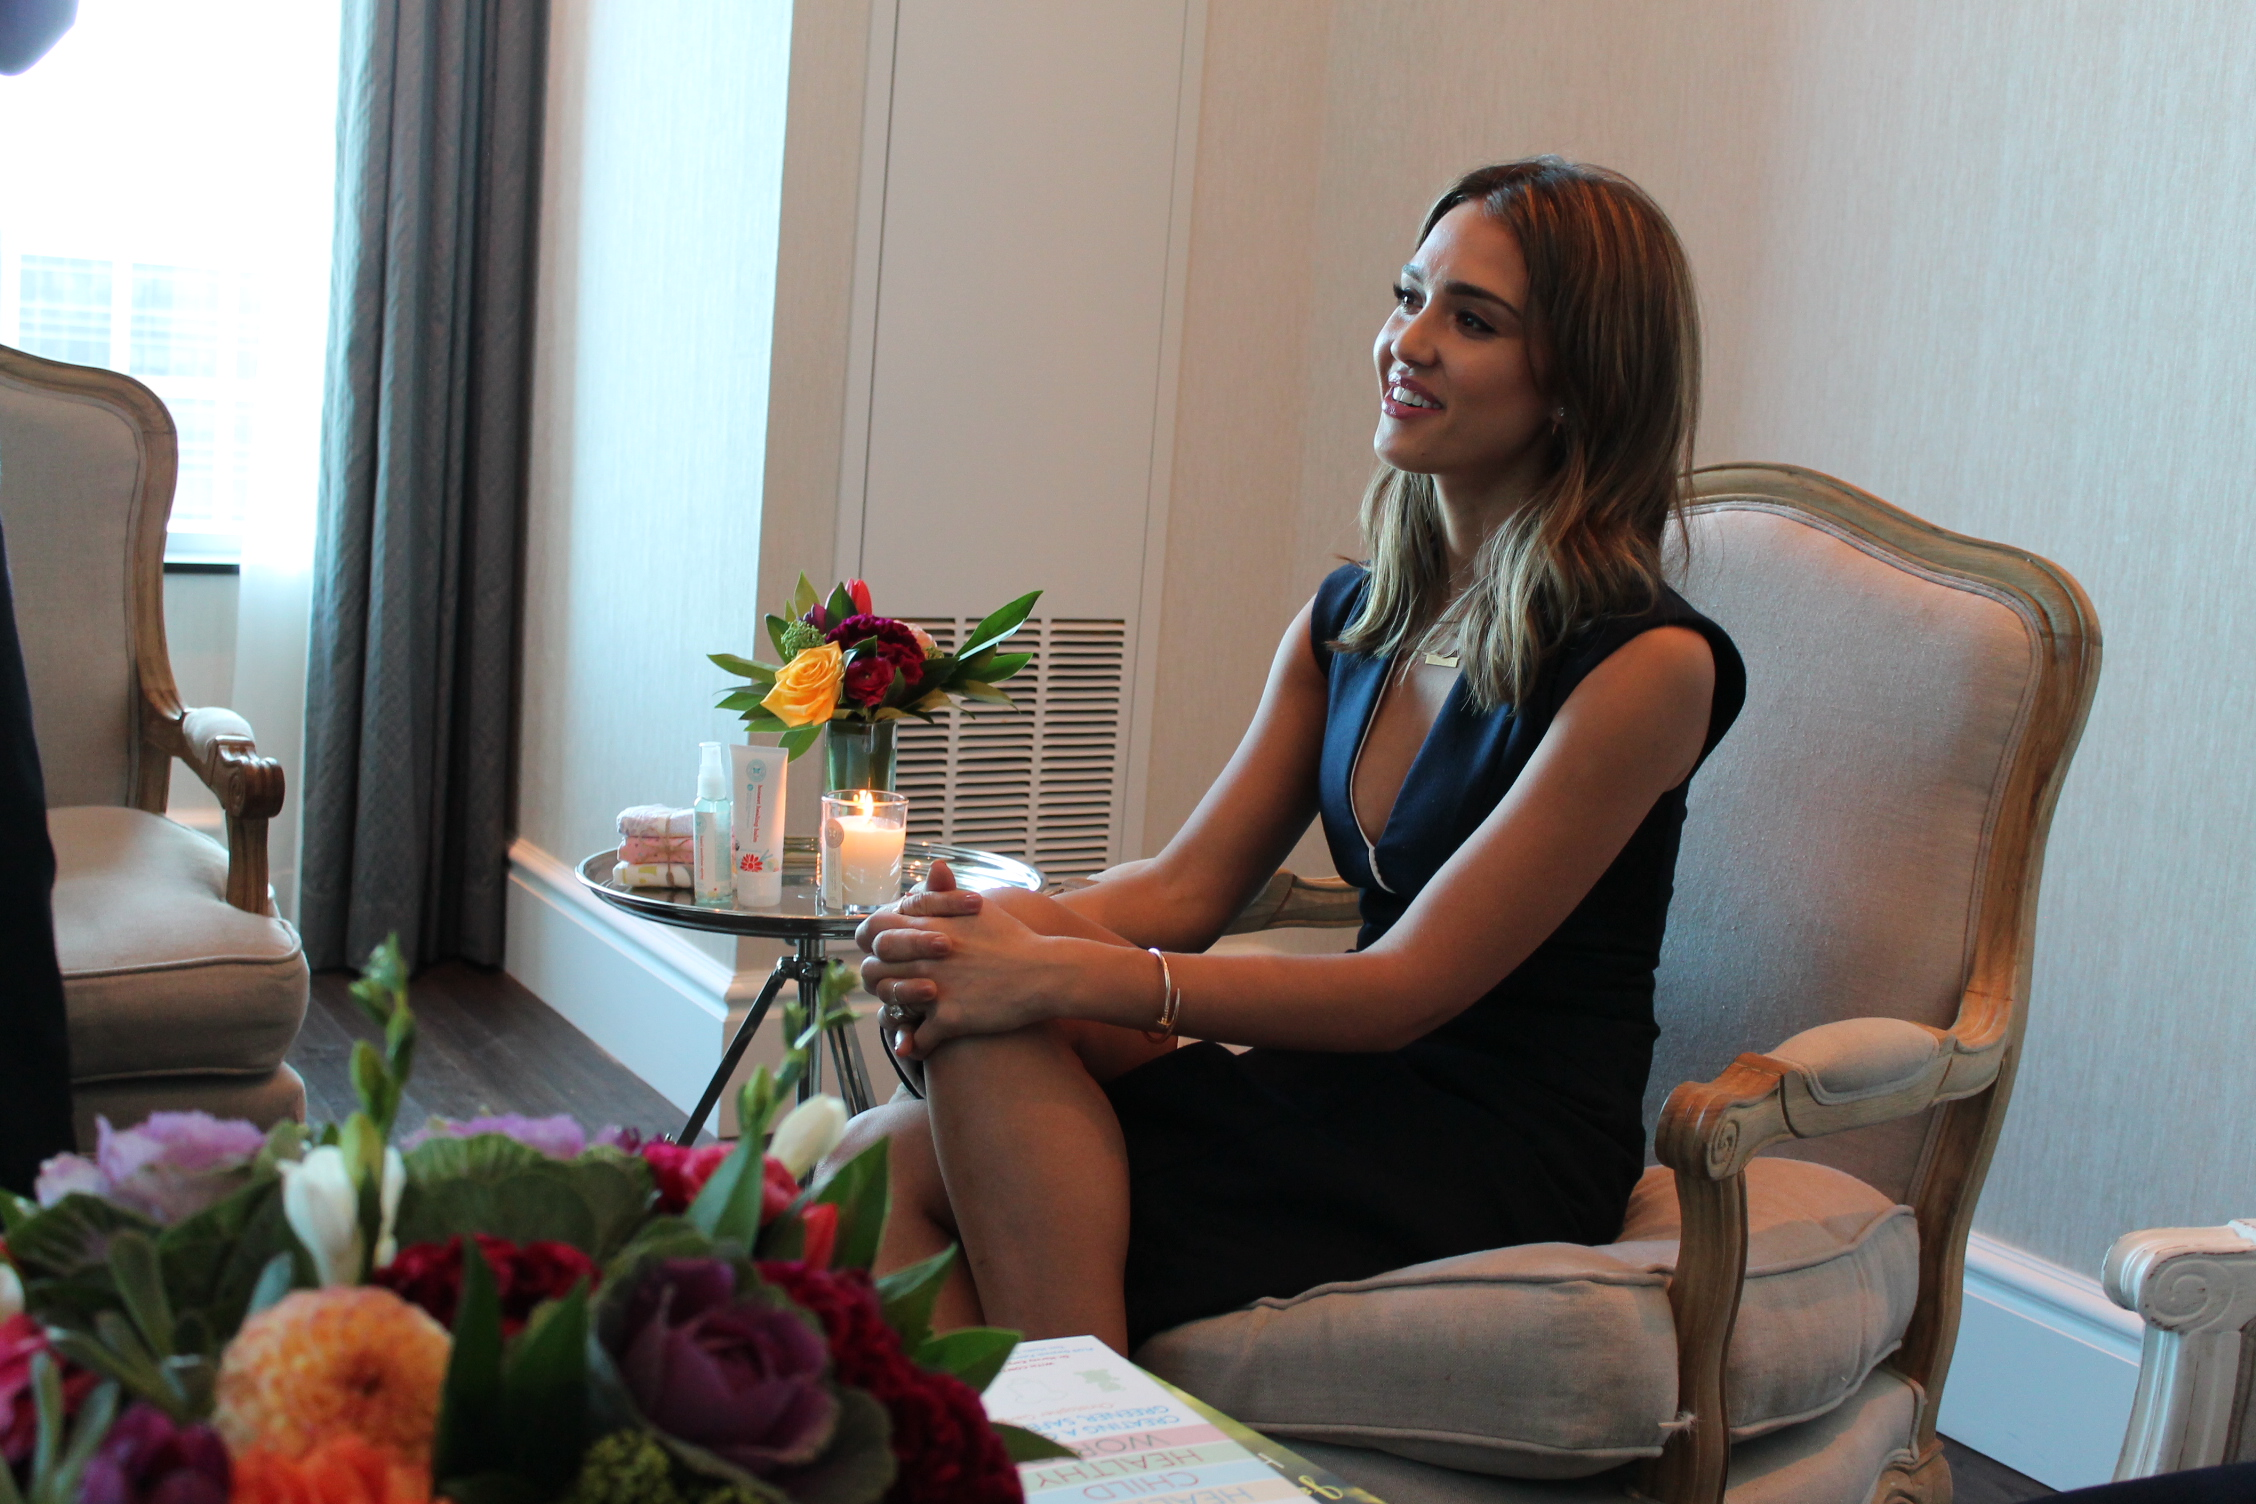 Jessica Alba during meet and greet at The Trump Tower